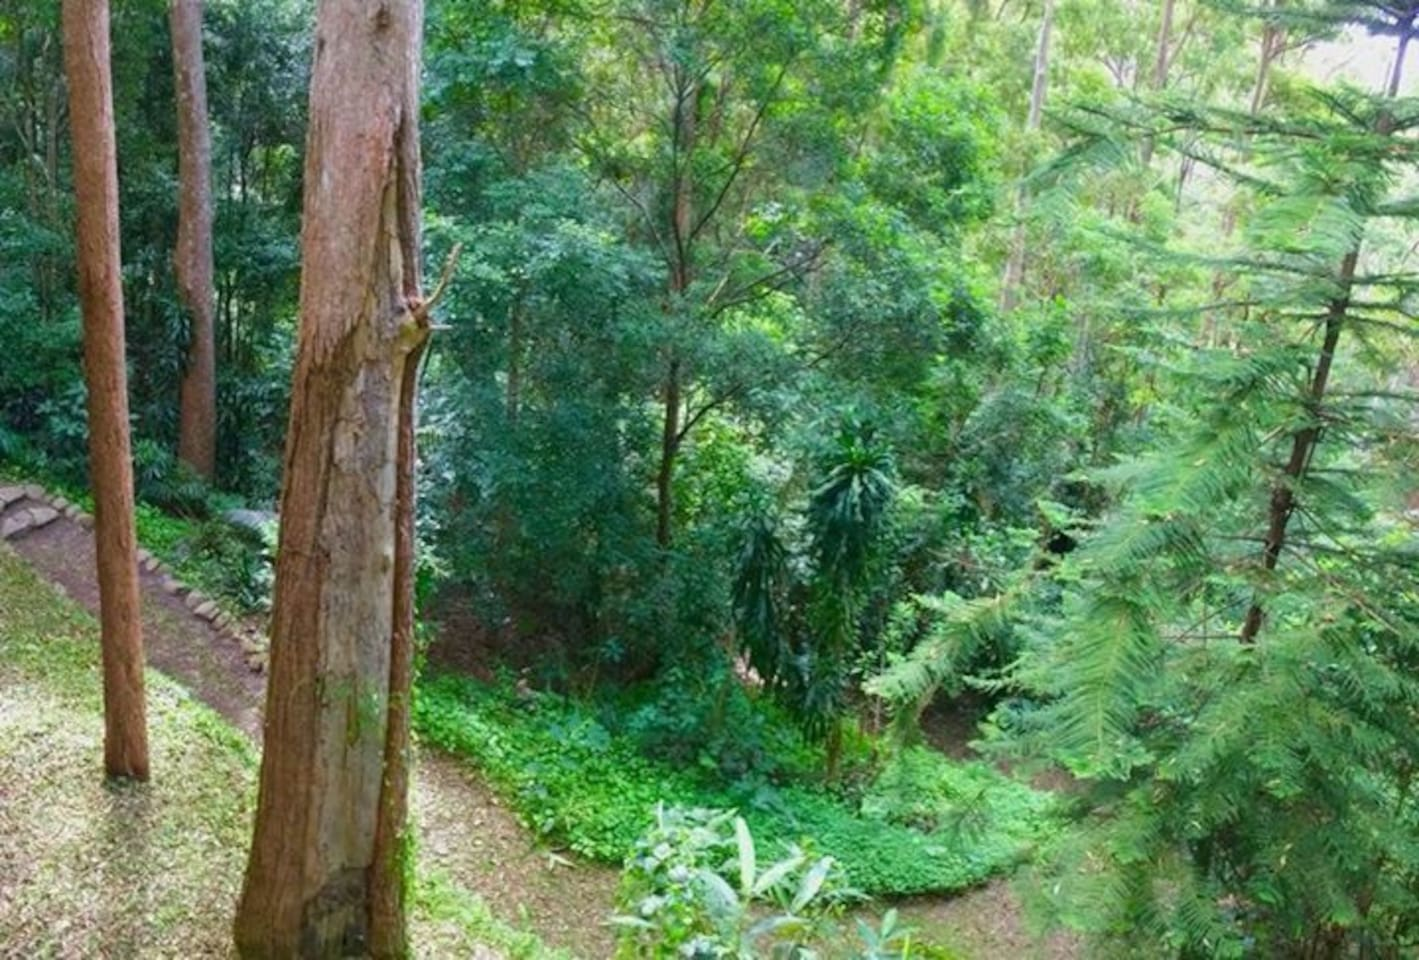 Forest views and private walking trails on the property.